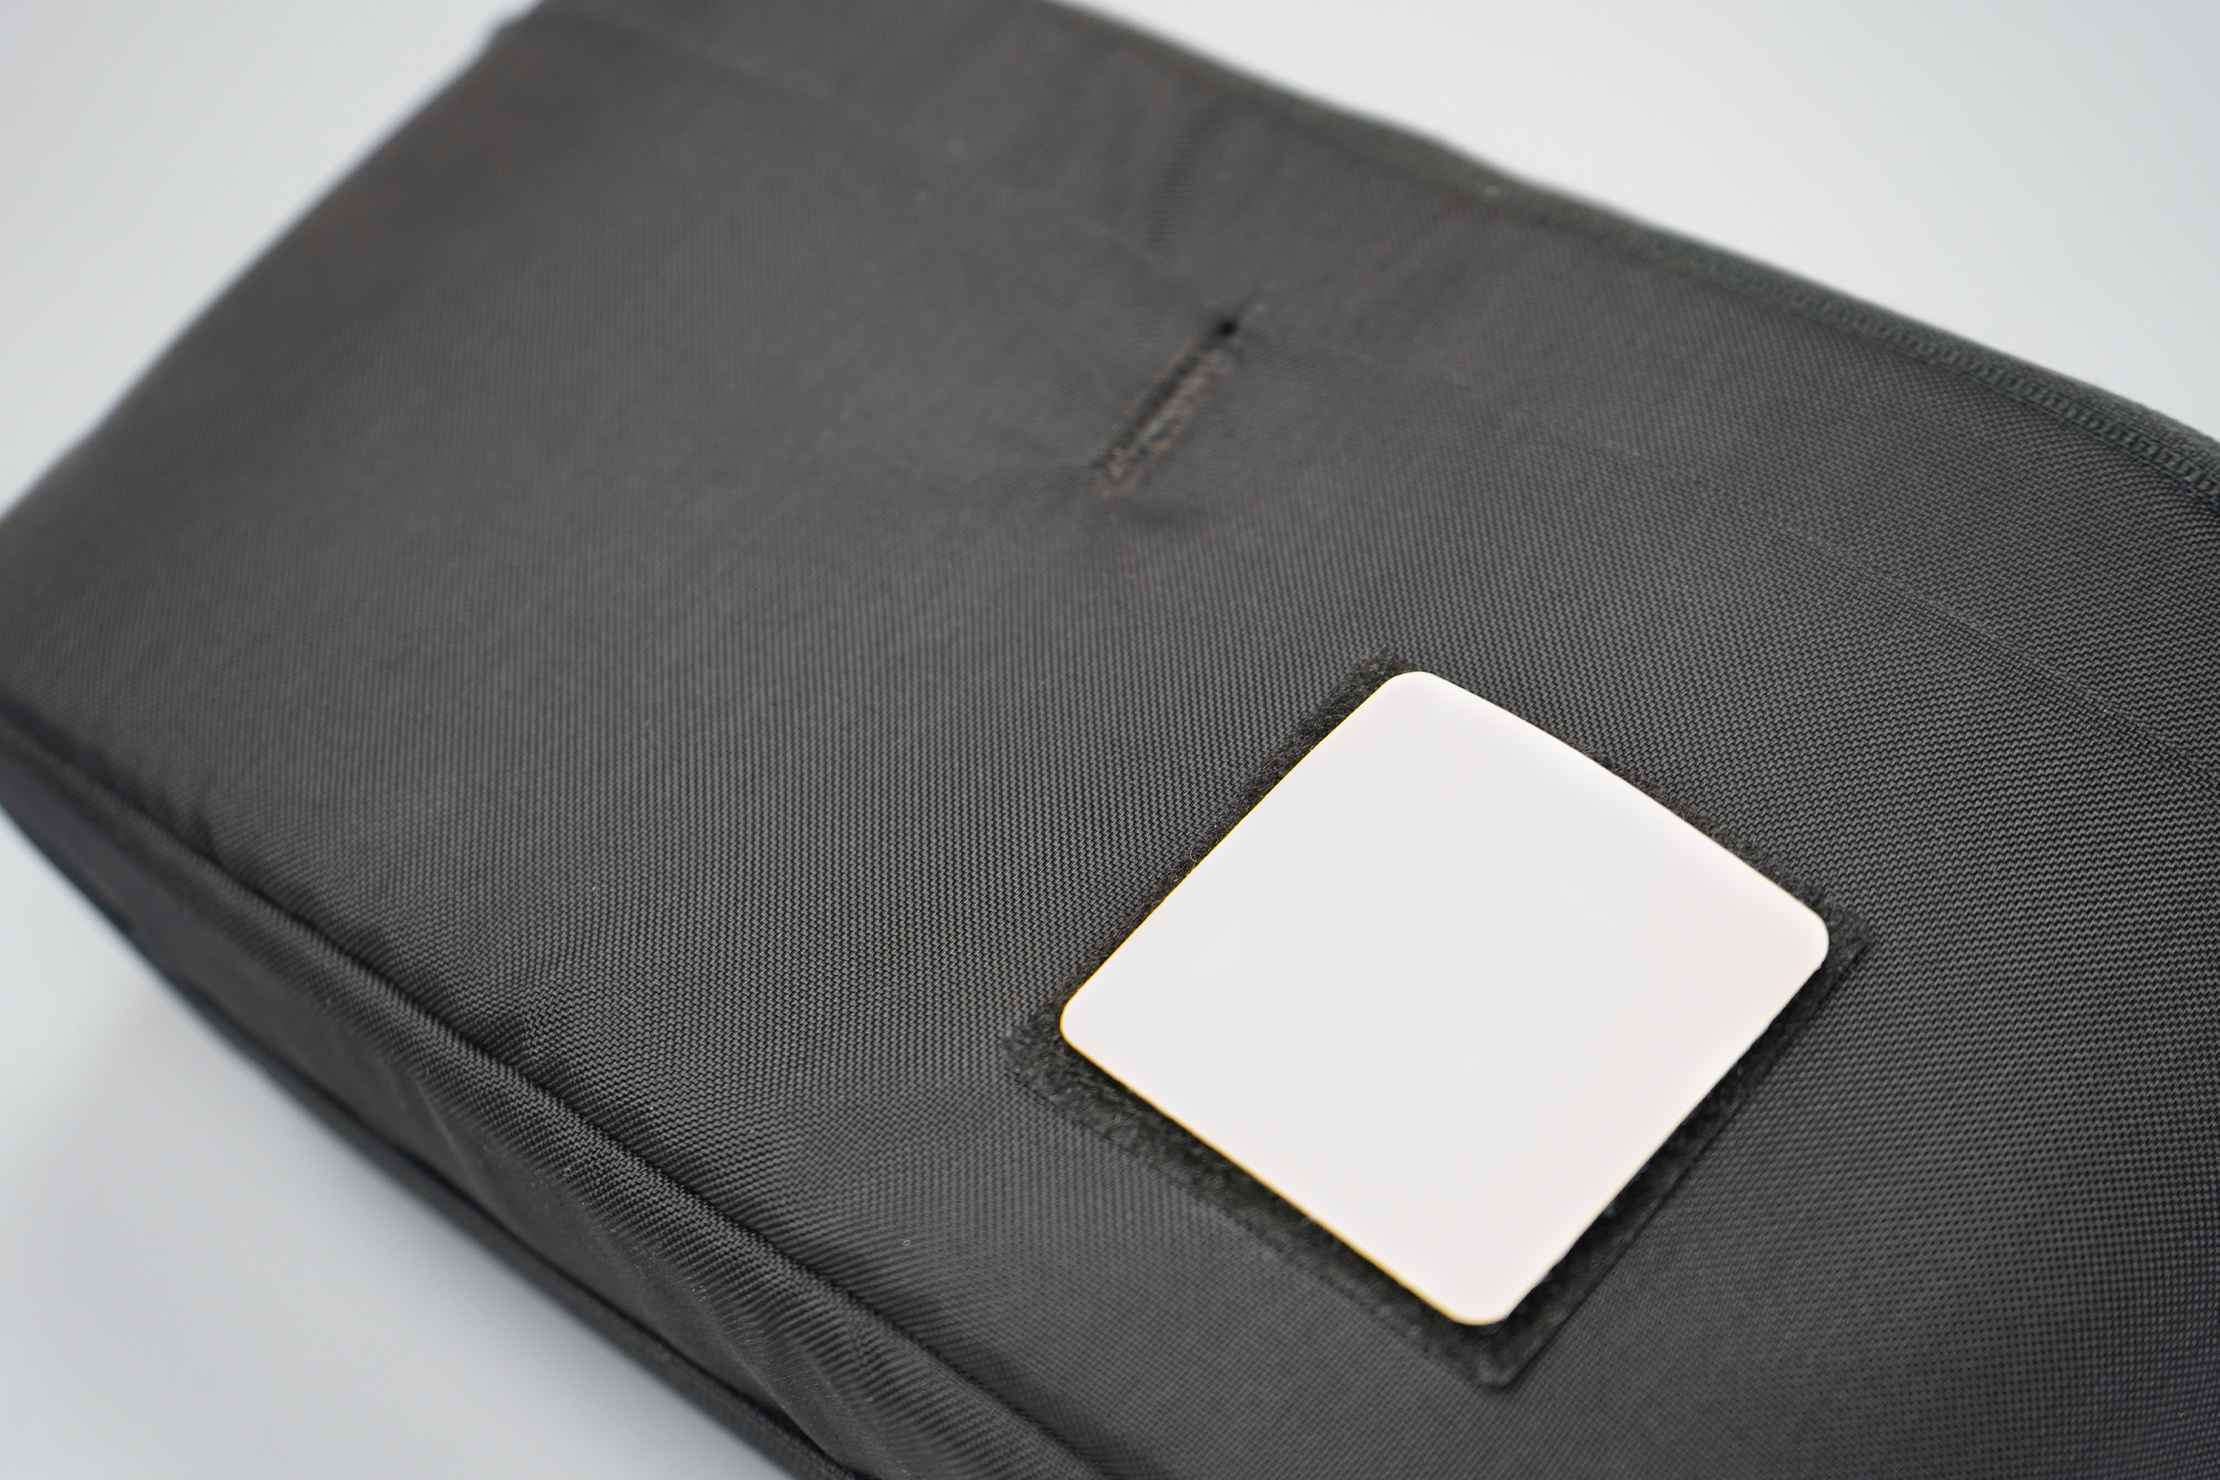 EVERGOODS Civic Access Pouch 2L | It's black, and so is the EVERGOODS logo underneath